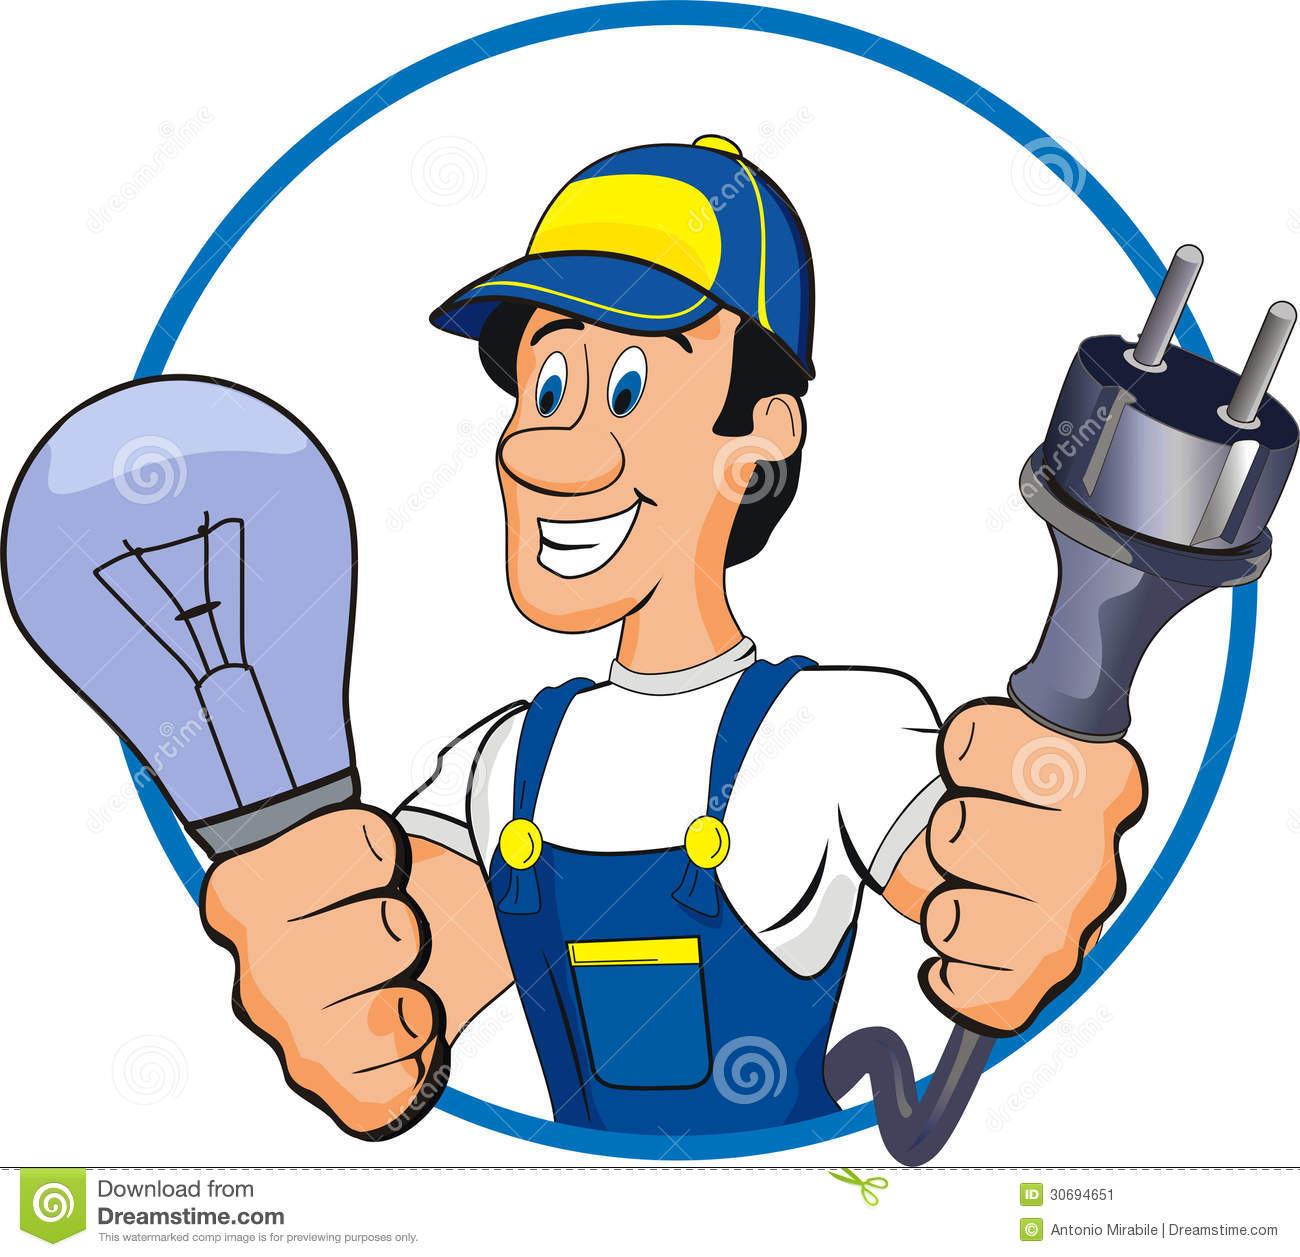 Electrician clipart image picture free library Electrician clipart » Clipart Station picture free library